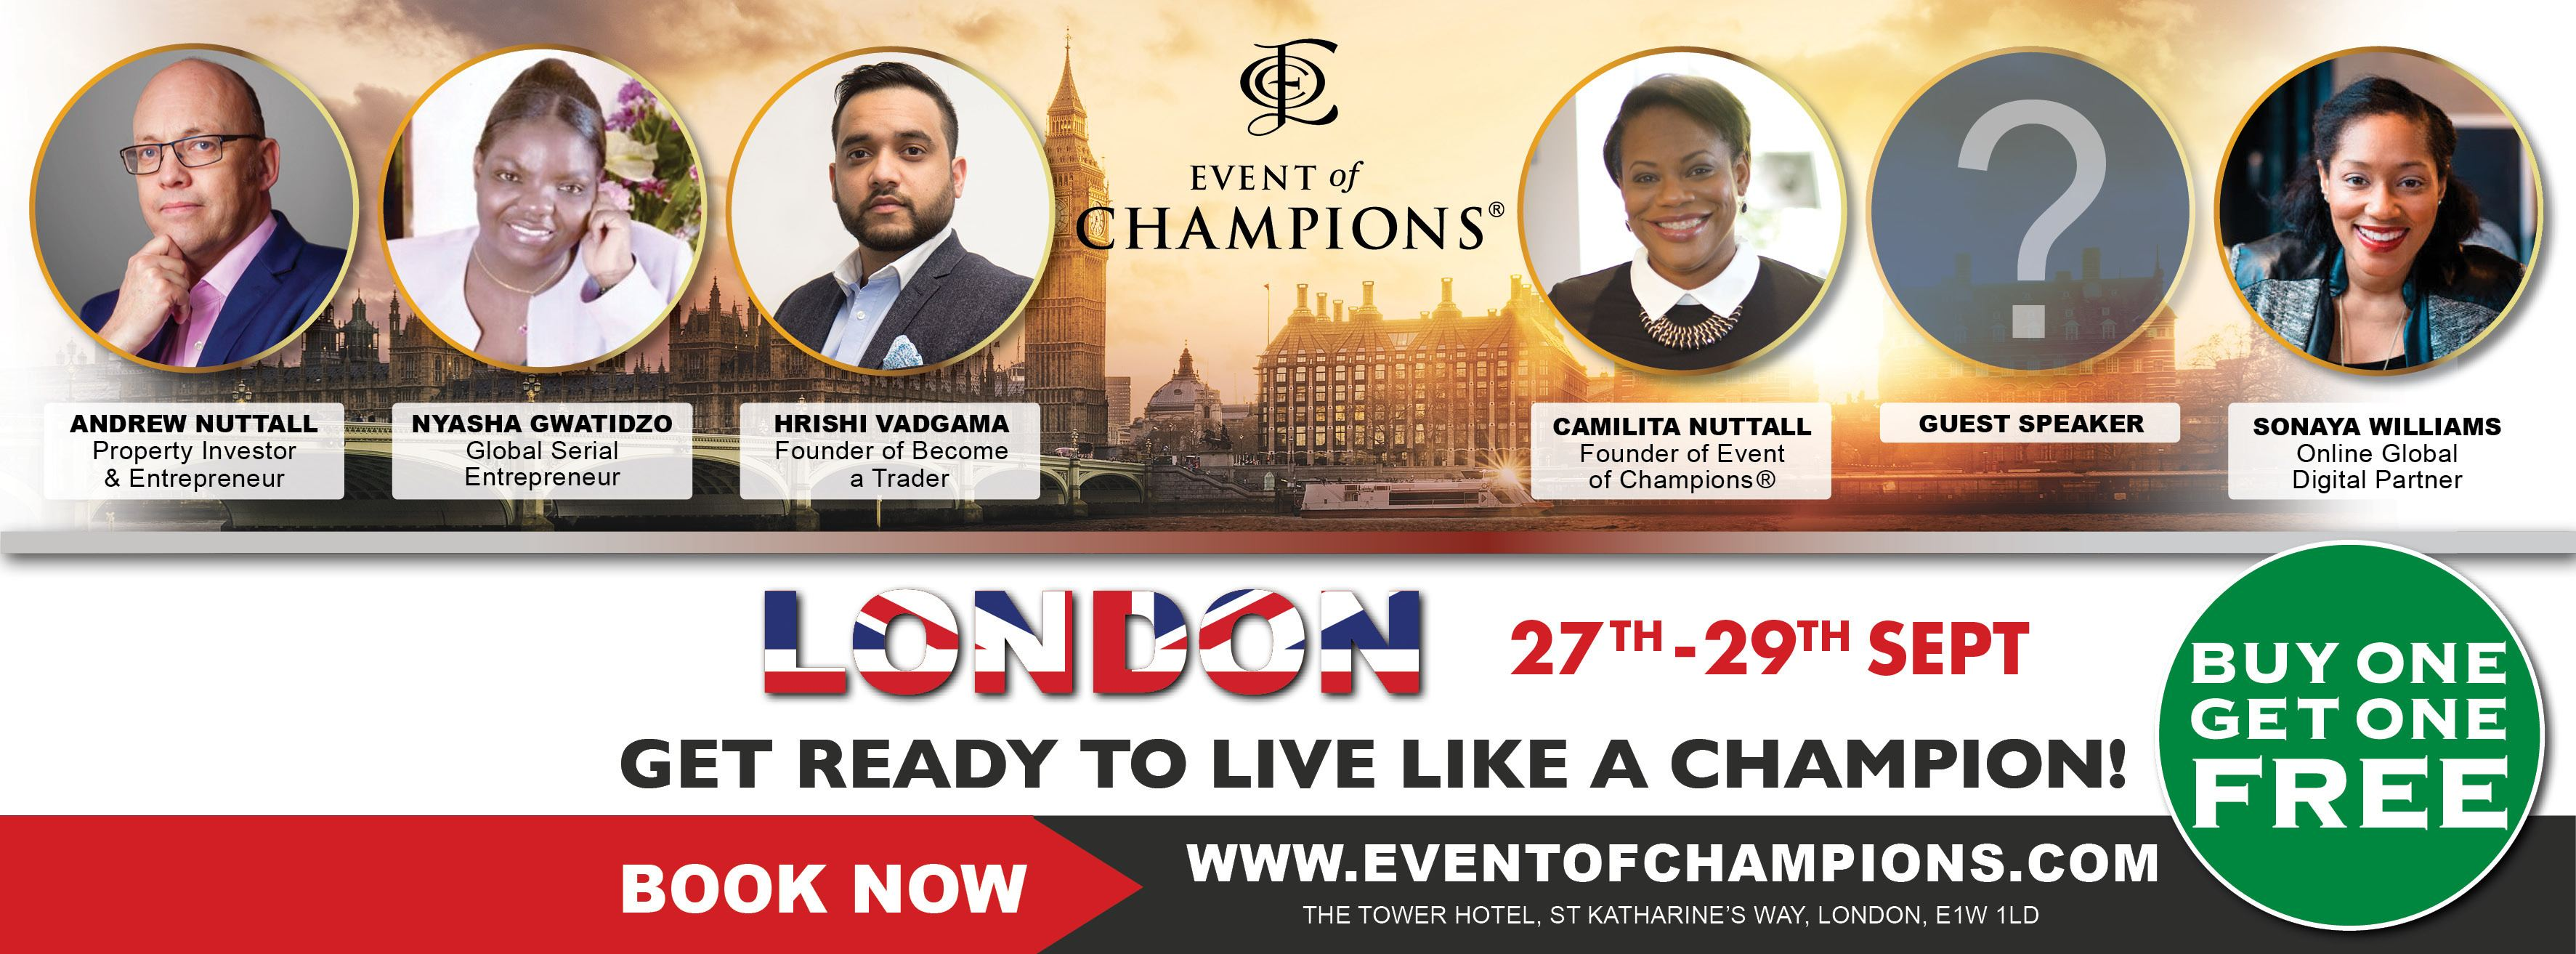 https://eventofchampions.com/event/main-event-london/team/mandieholgate